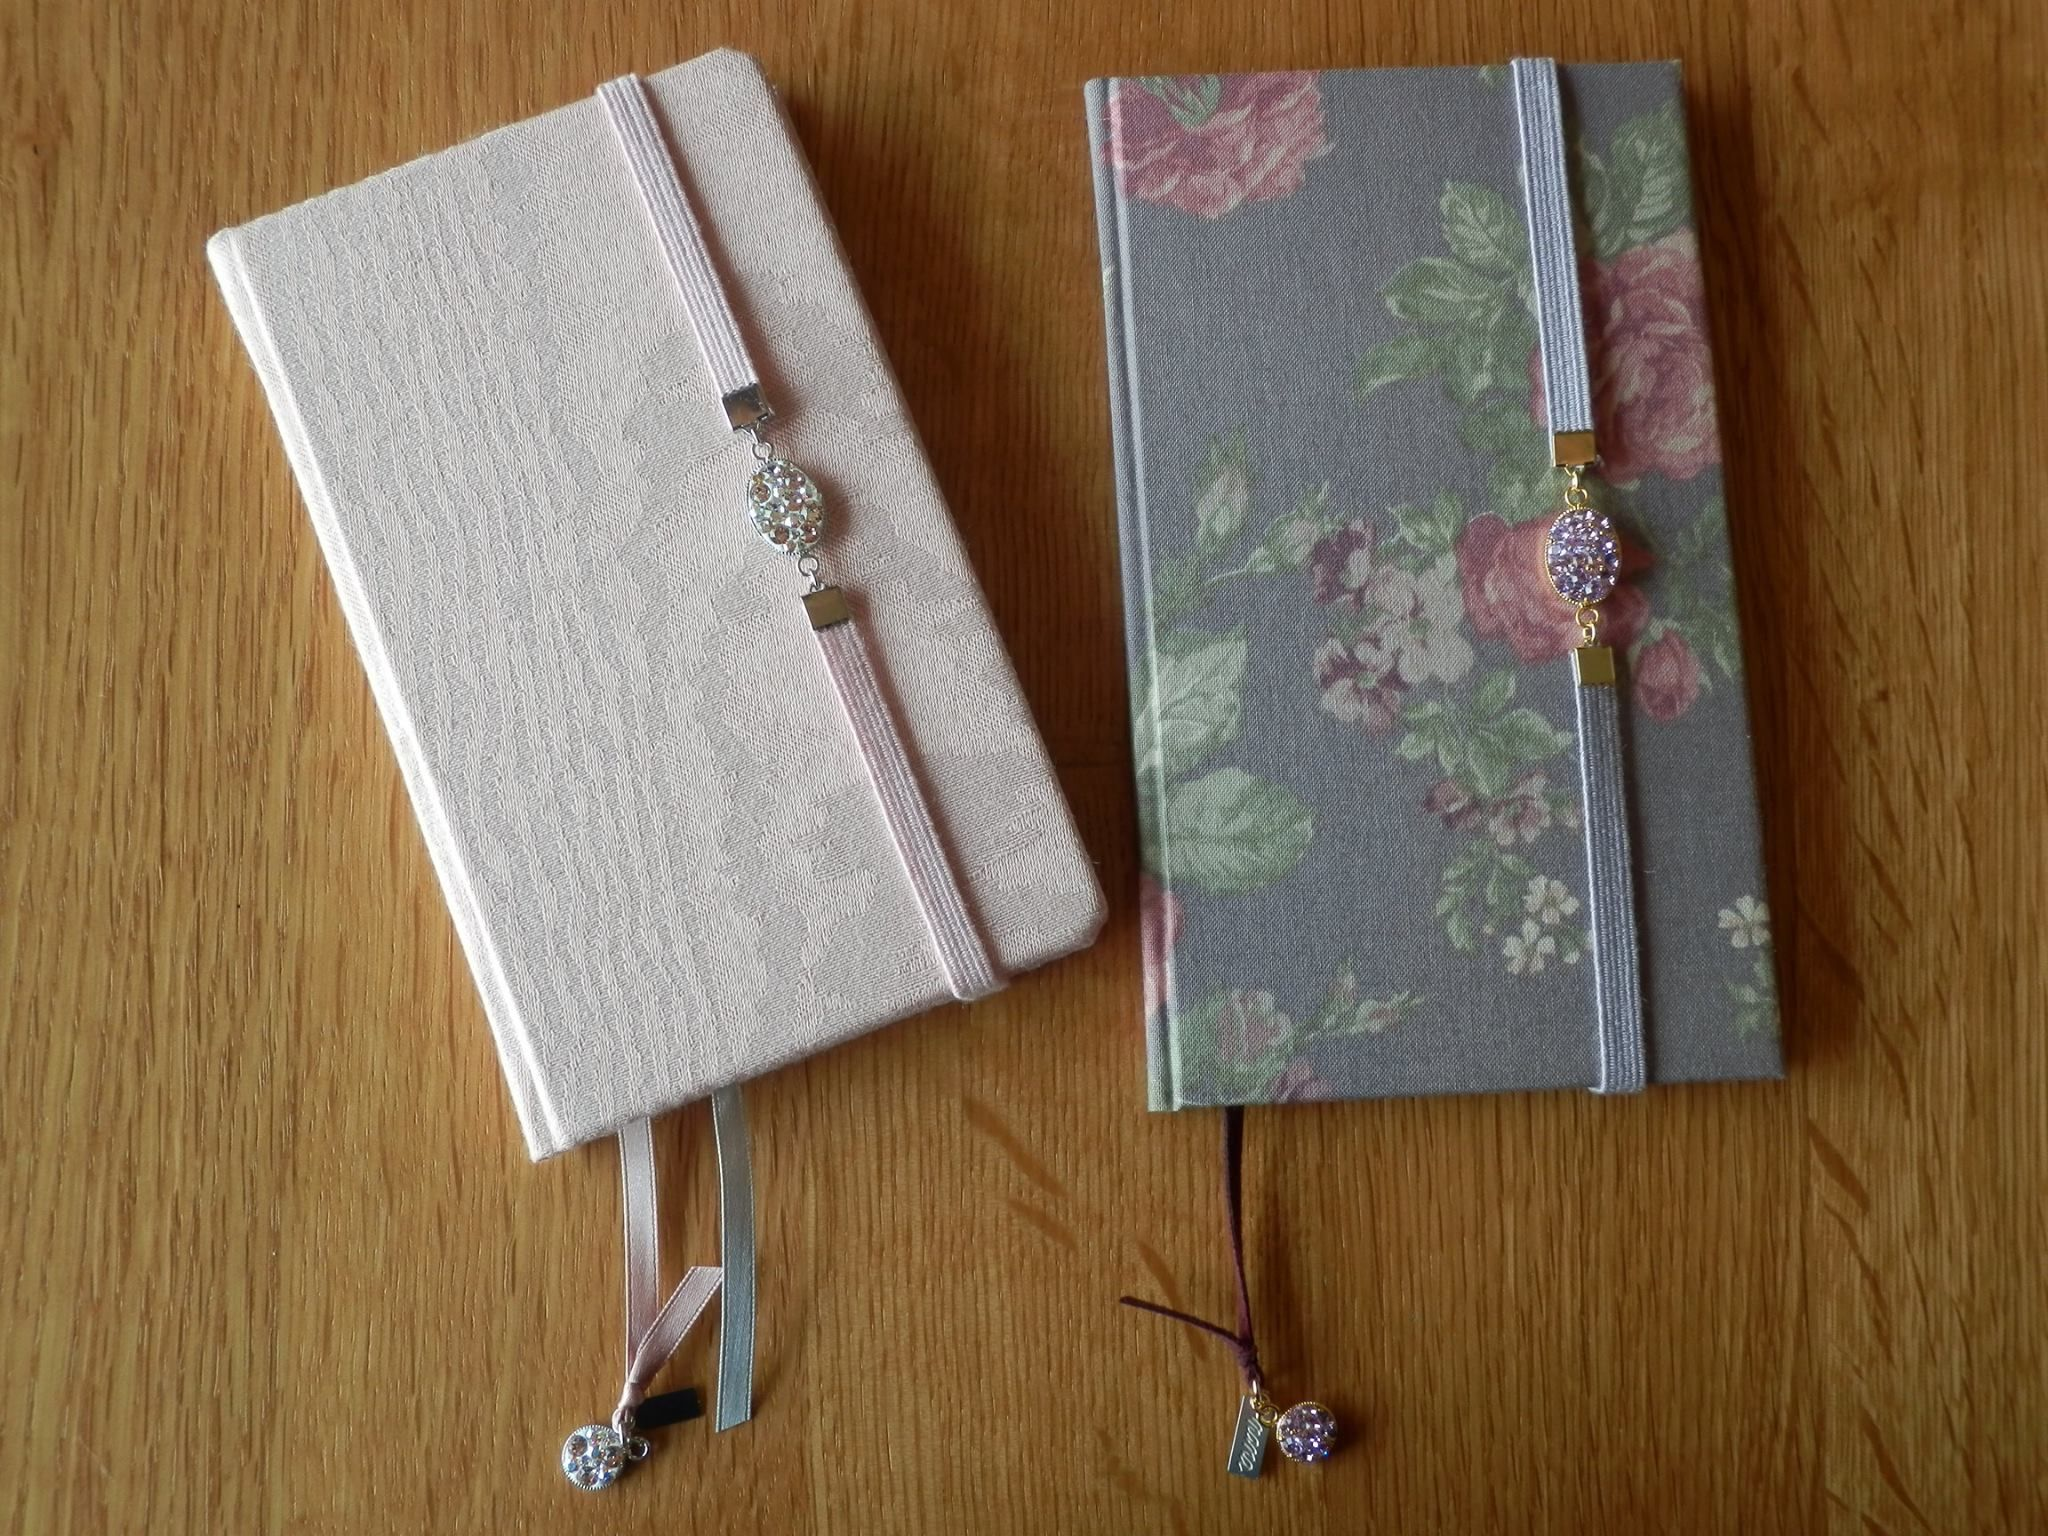 re-covered planners by Ryoko Shimizu